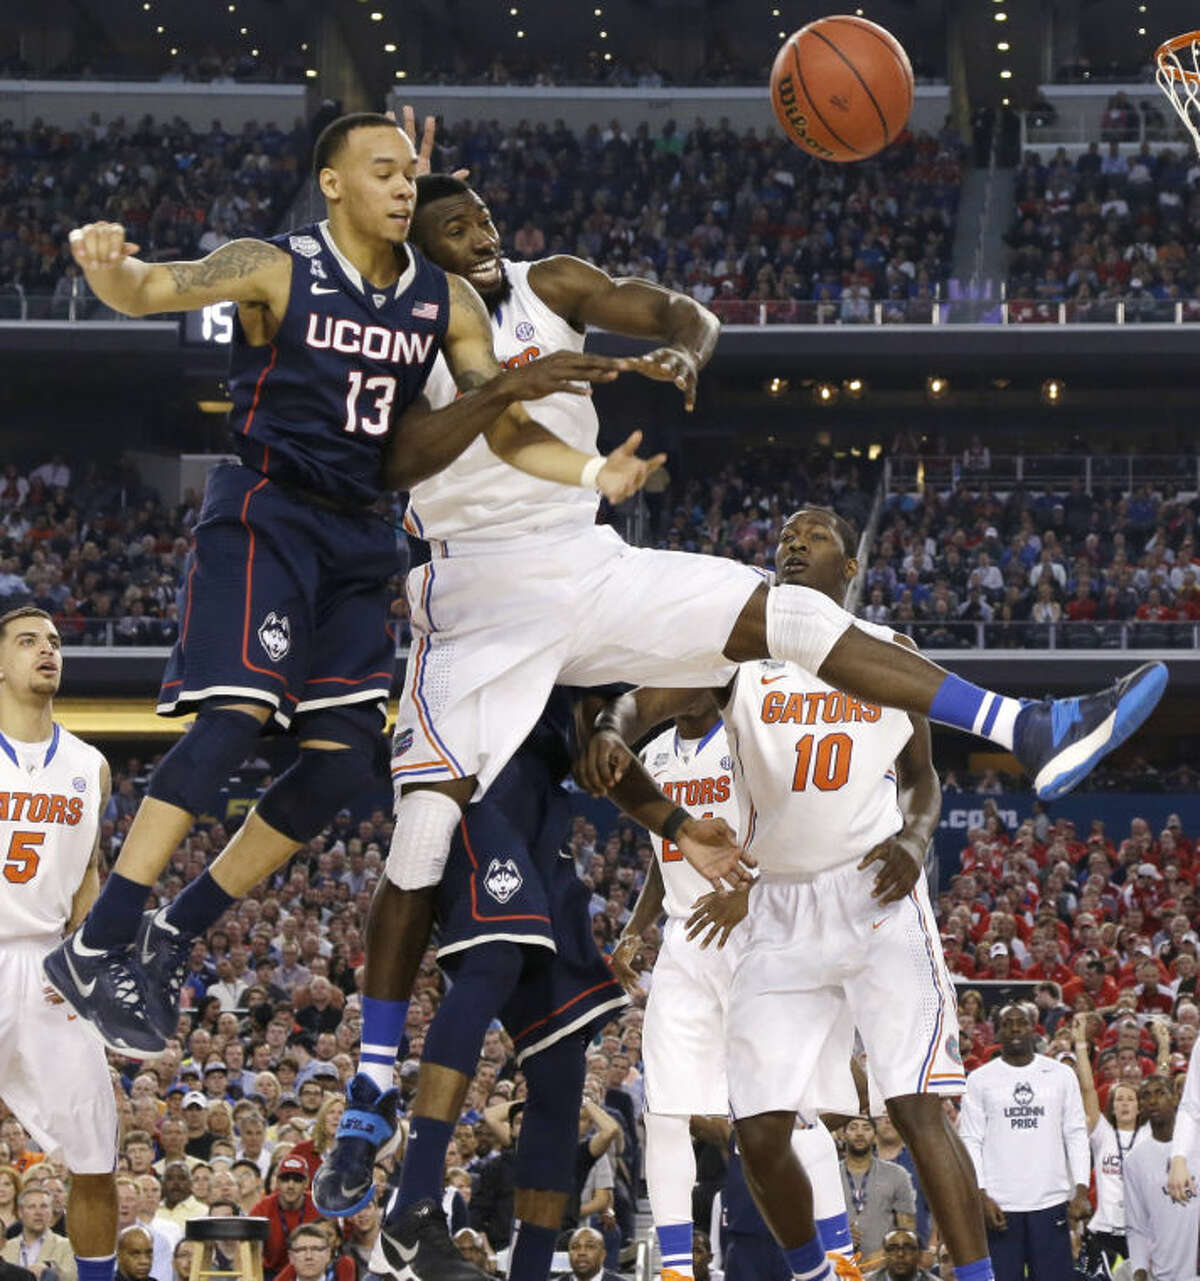 Connecticut guard Shabazz Napier, left, fights for a loose ball with Florida center Patric Young during the second half of an NCAA Final Four tournament college basketball semifinal game Saturday, April 5, 2014, in Arlington, Texas. (AP Photo/Eric Gay)